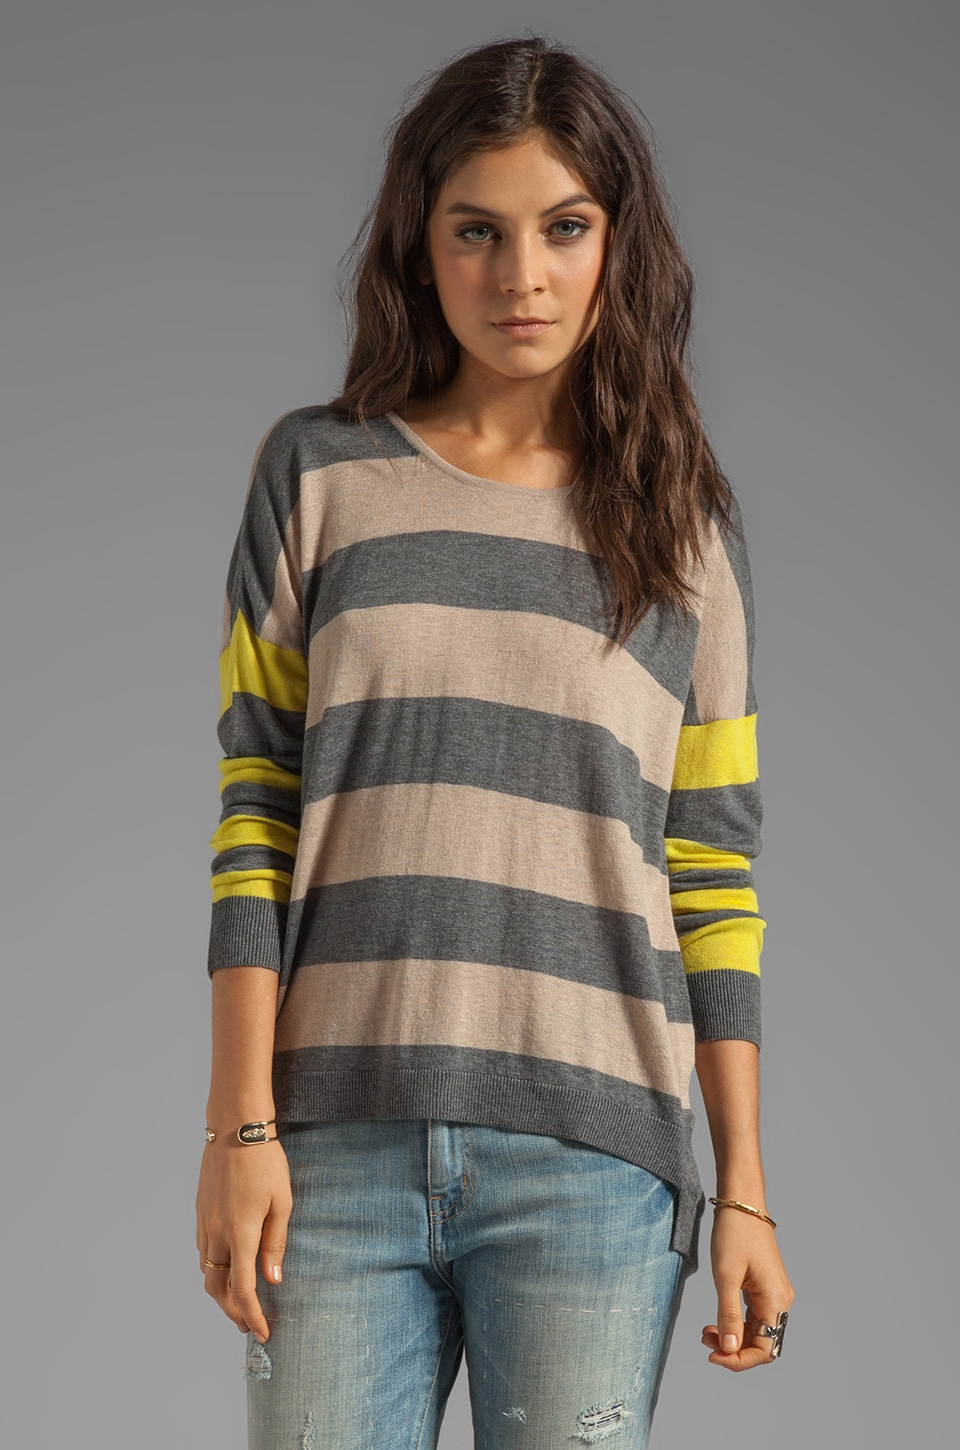 C&C California Cashmere Blend Stripe Sweater Hi-Lo Sweater in Oatmeal